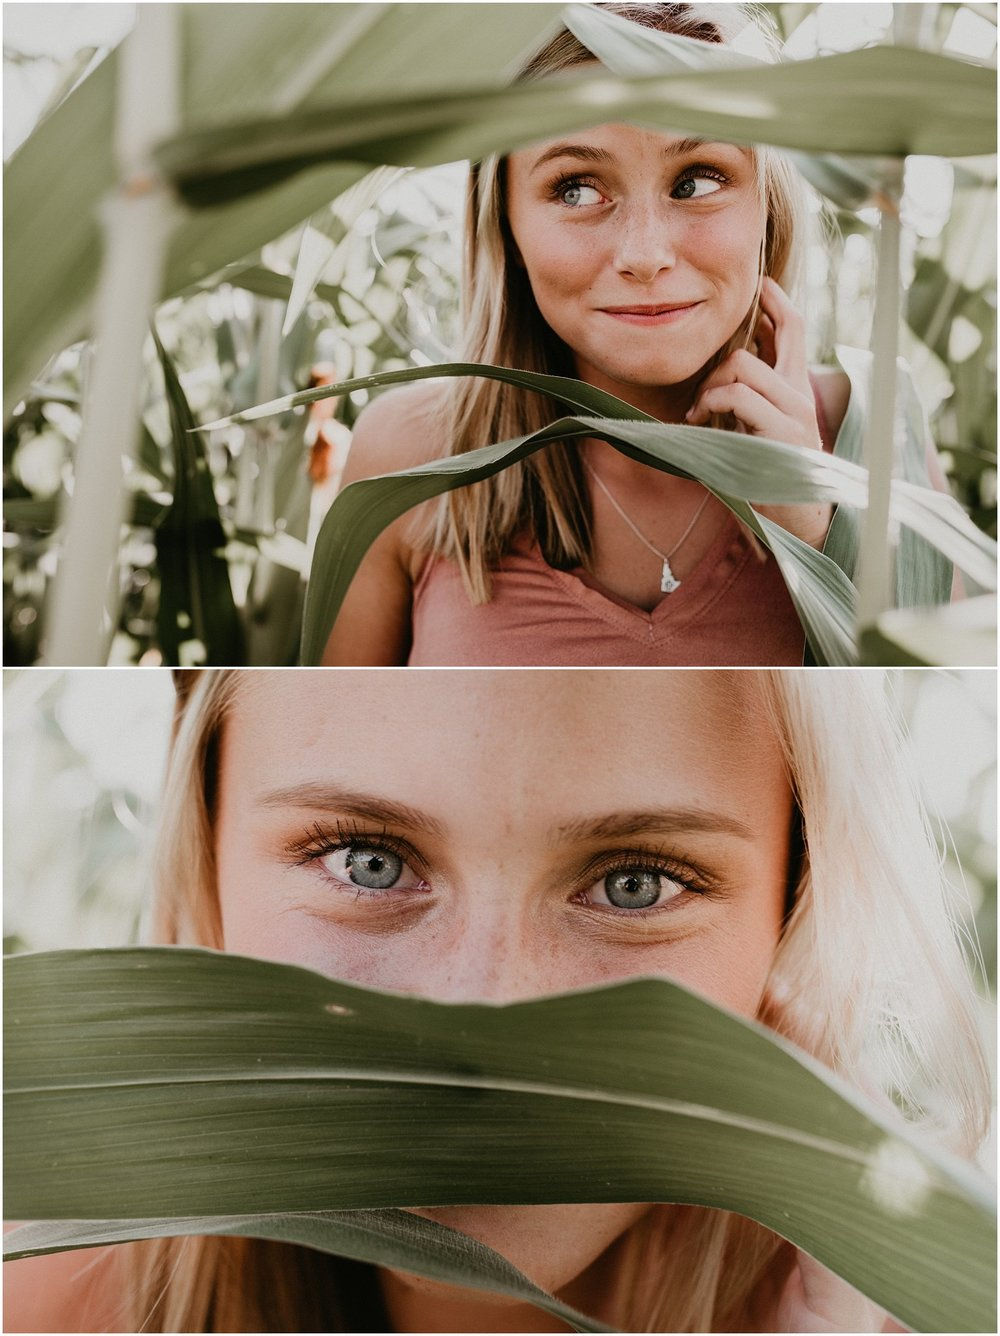 Boise Senior Photographer Makayla Madden Photography Corn Field Kuna Summer Senior Session Location Ideas Kuna High Brooke Ray Laughter Fun Eyes Unique